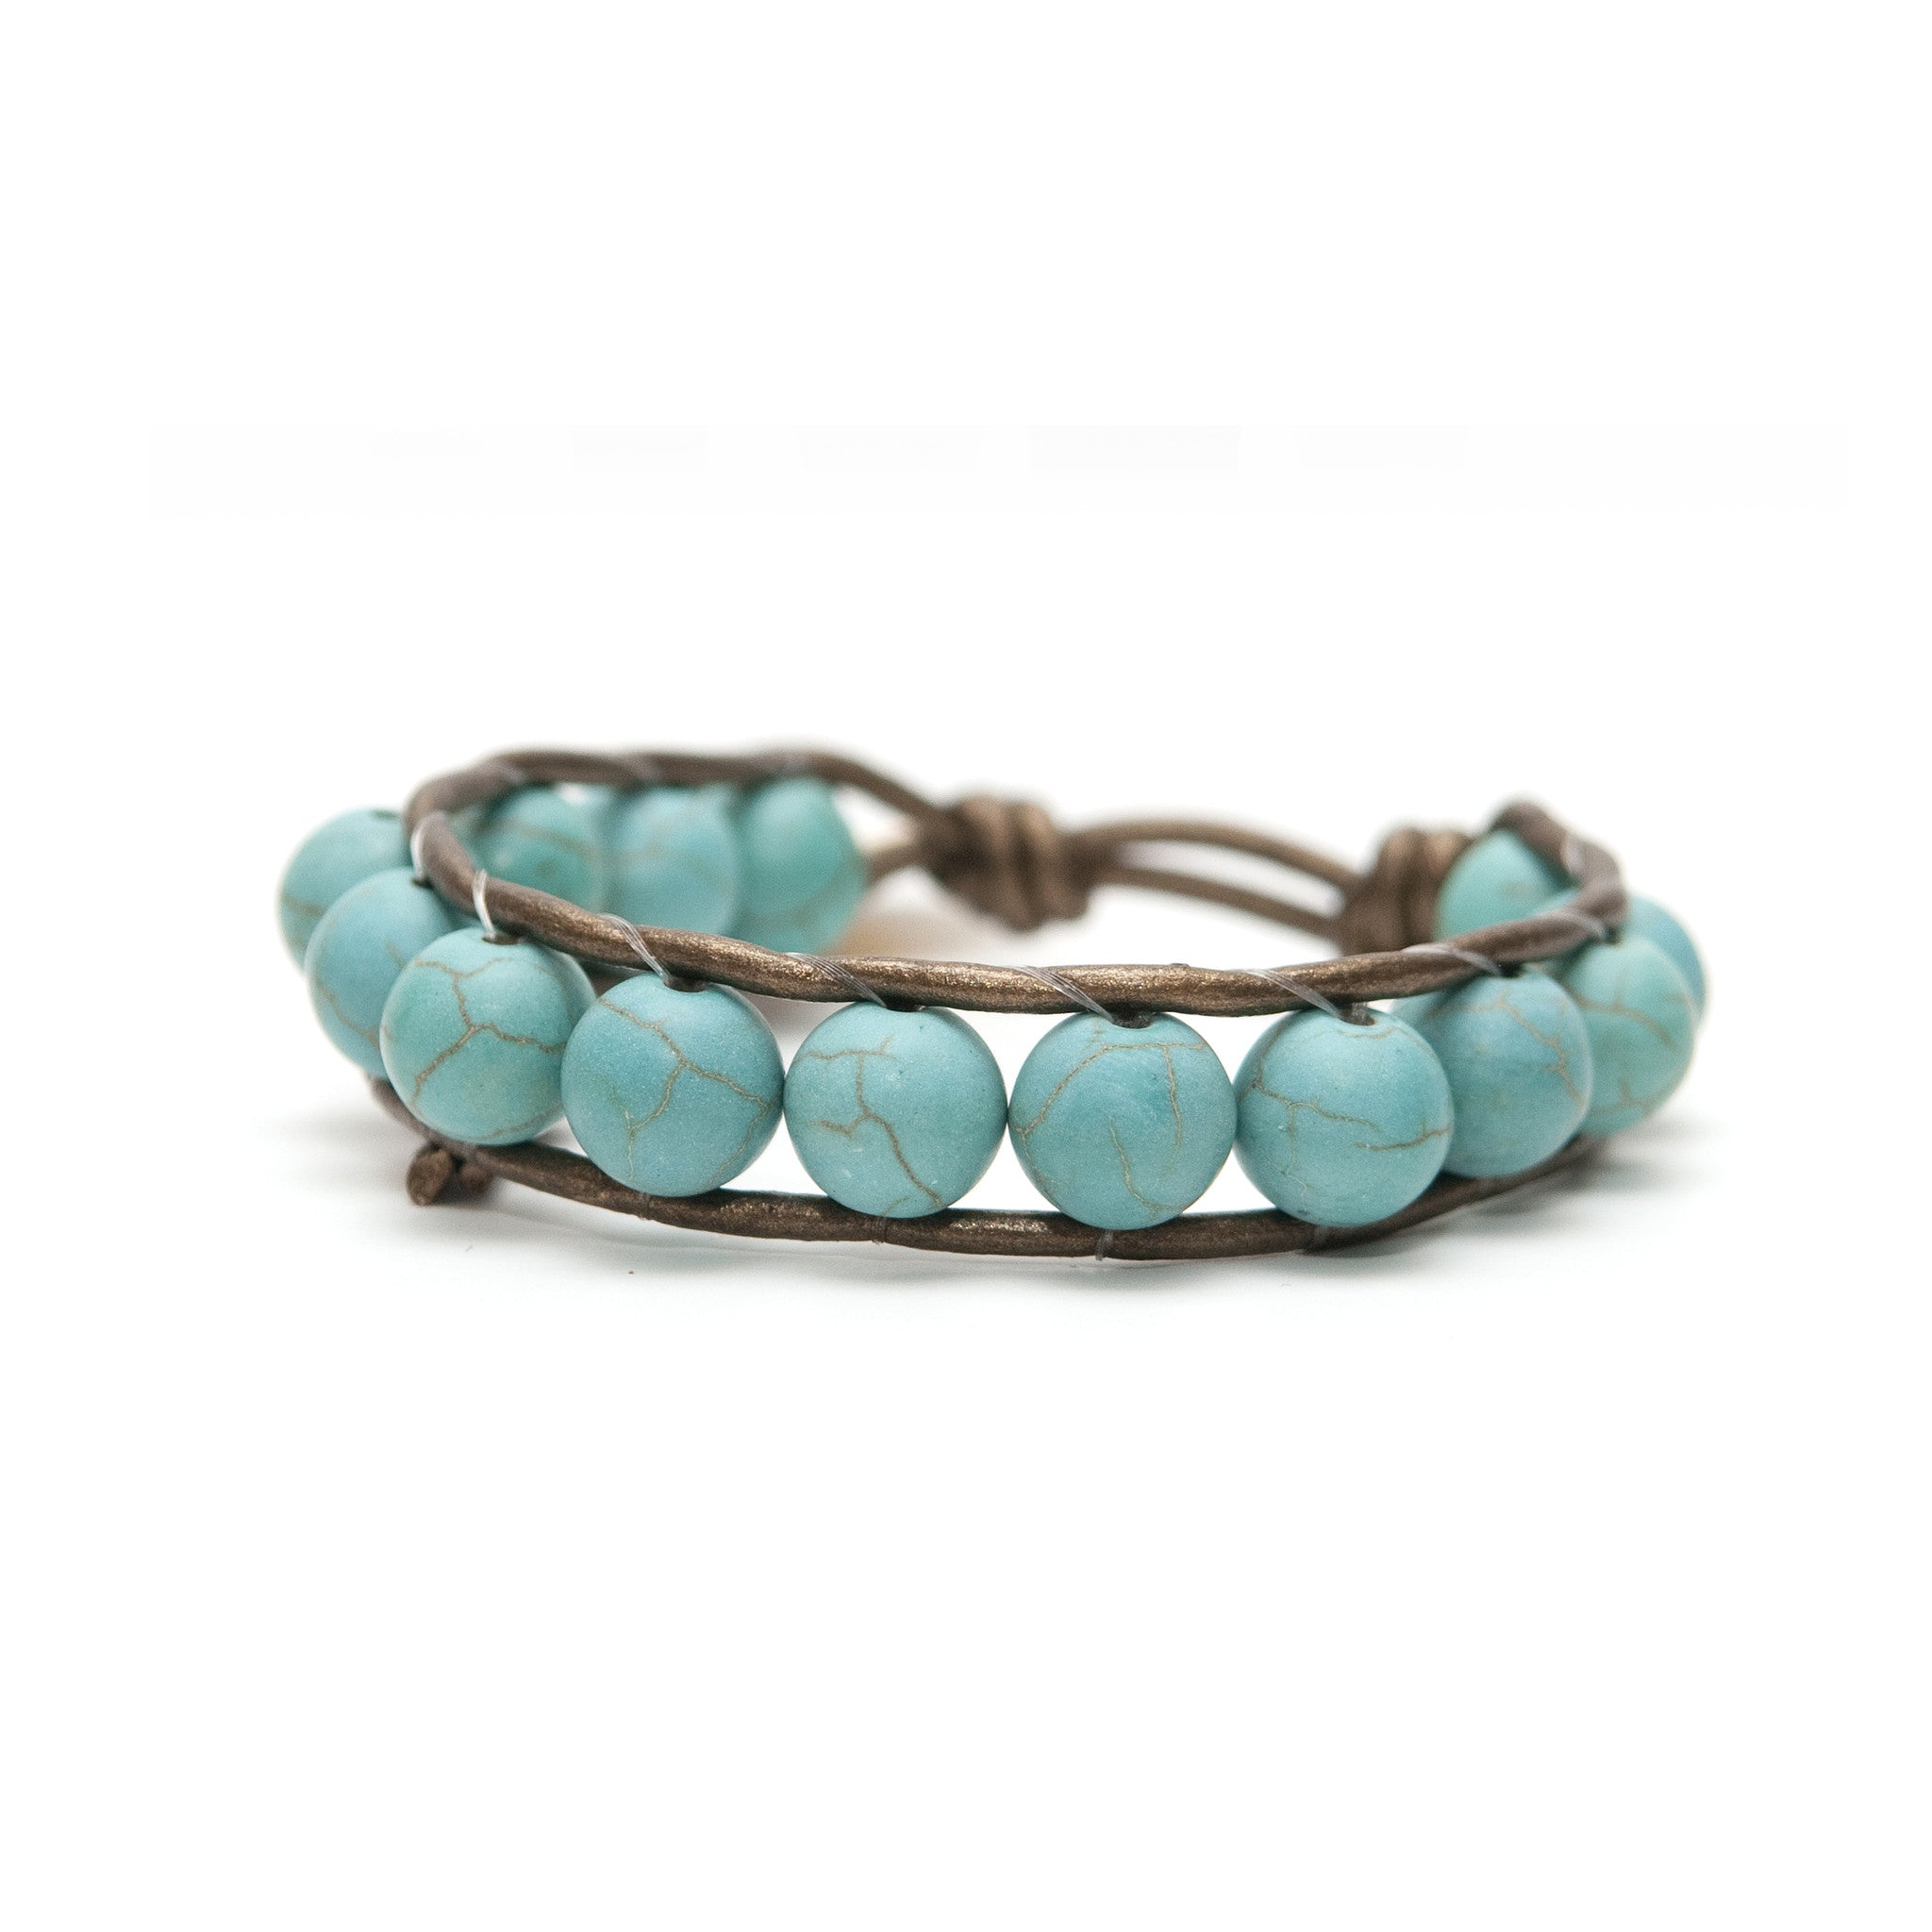 Tied Together Wrap Bracelet